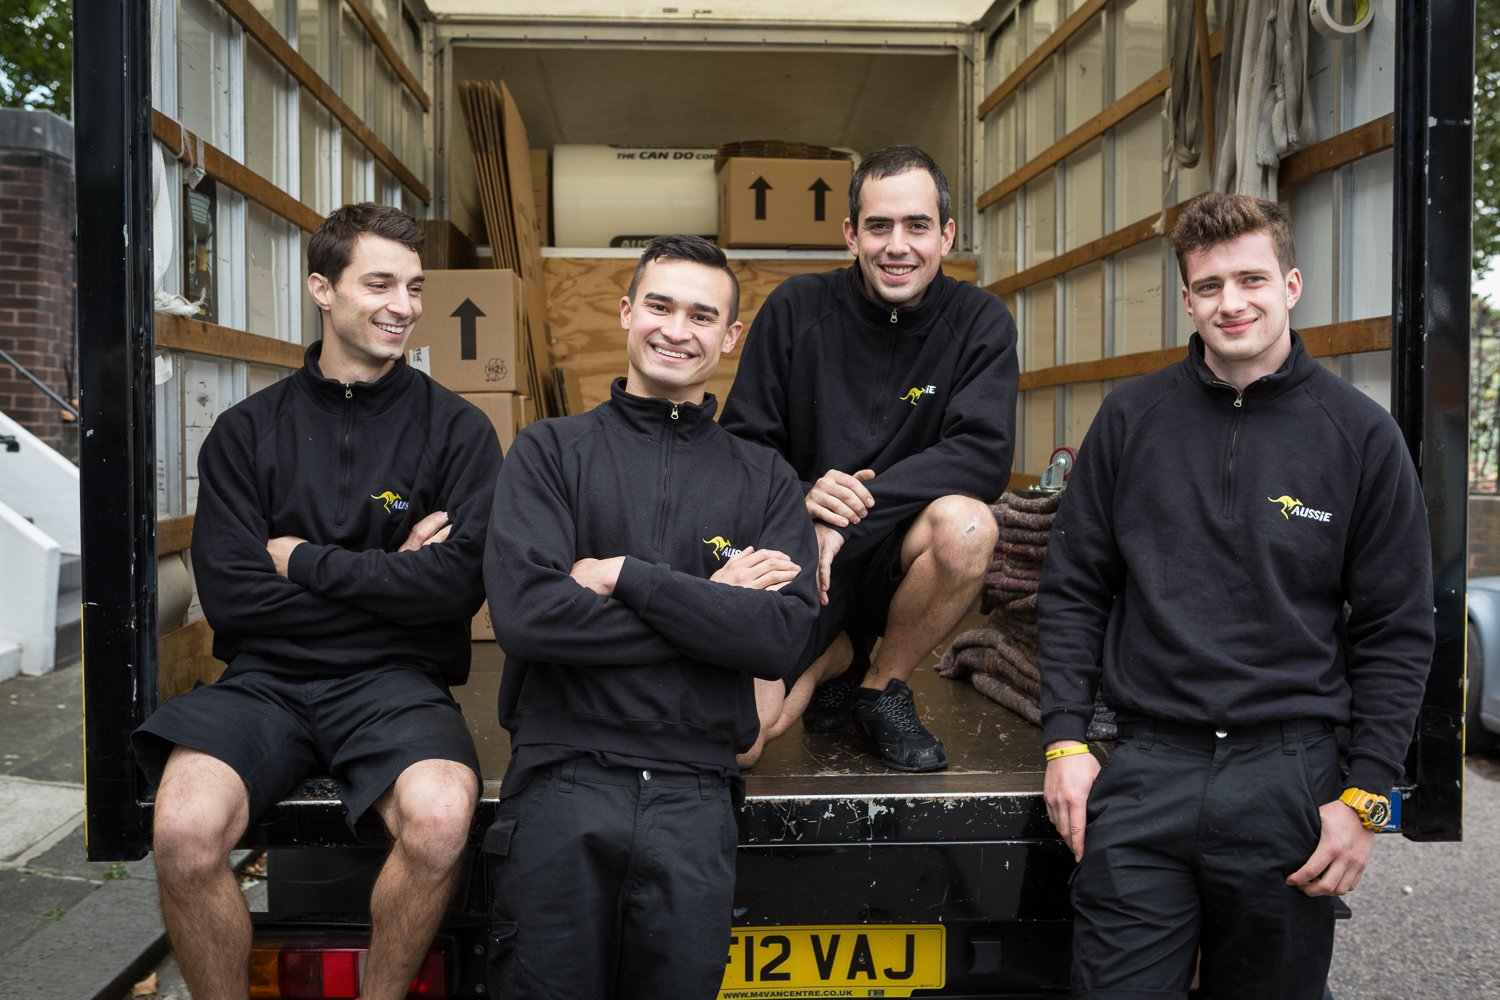 Providing a Full Range of Business Removals and Storage Services in Bath